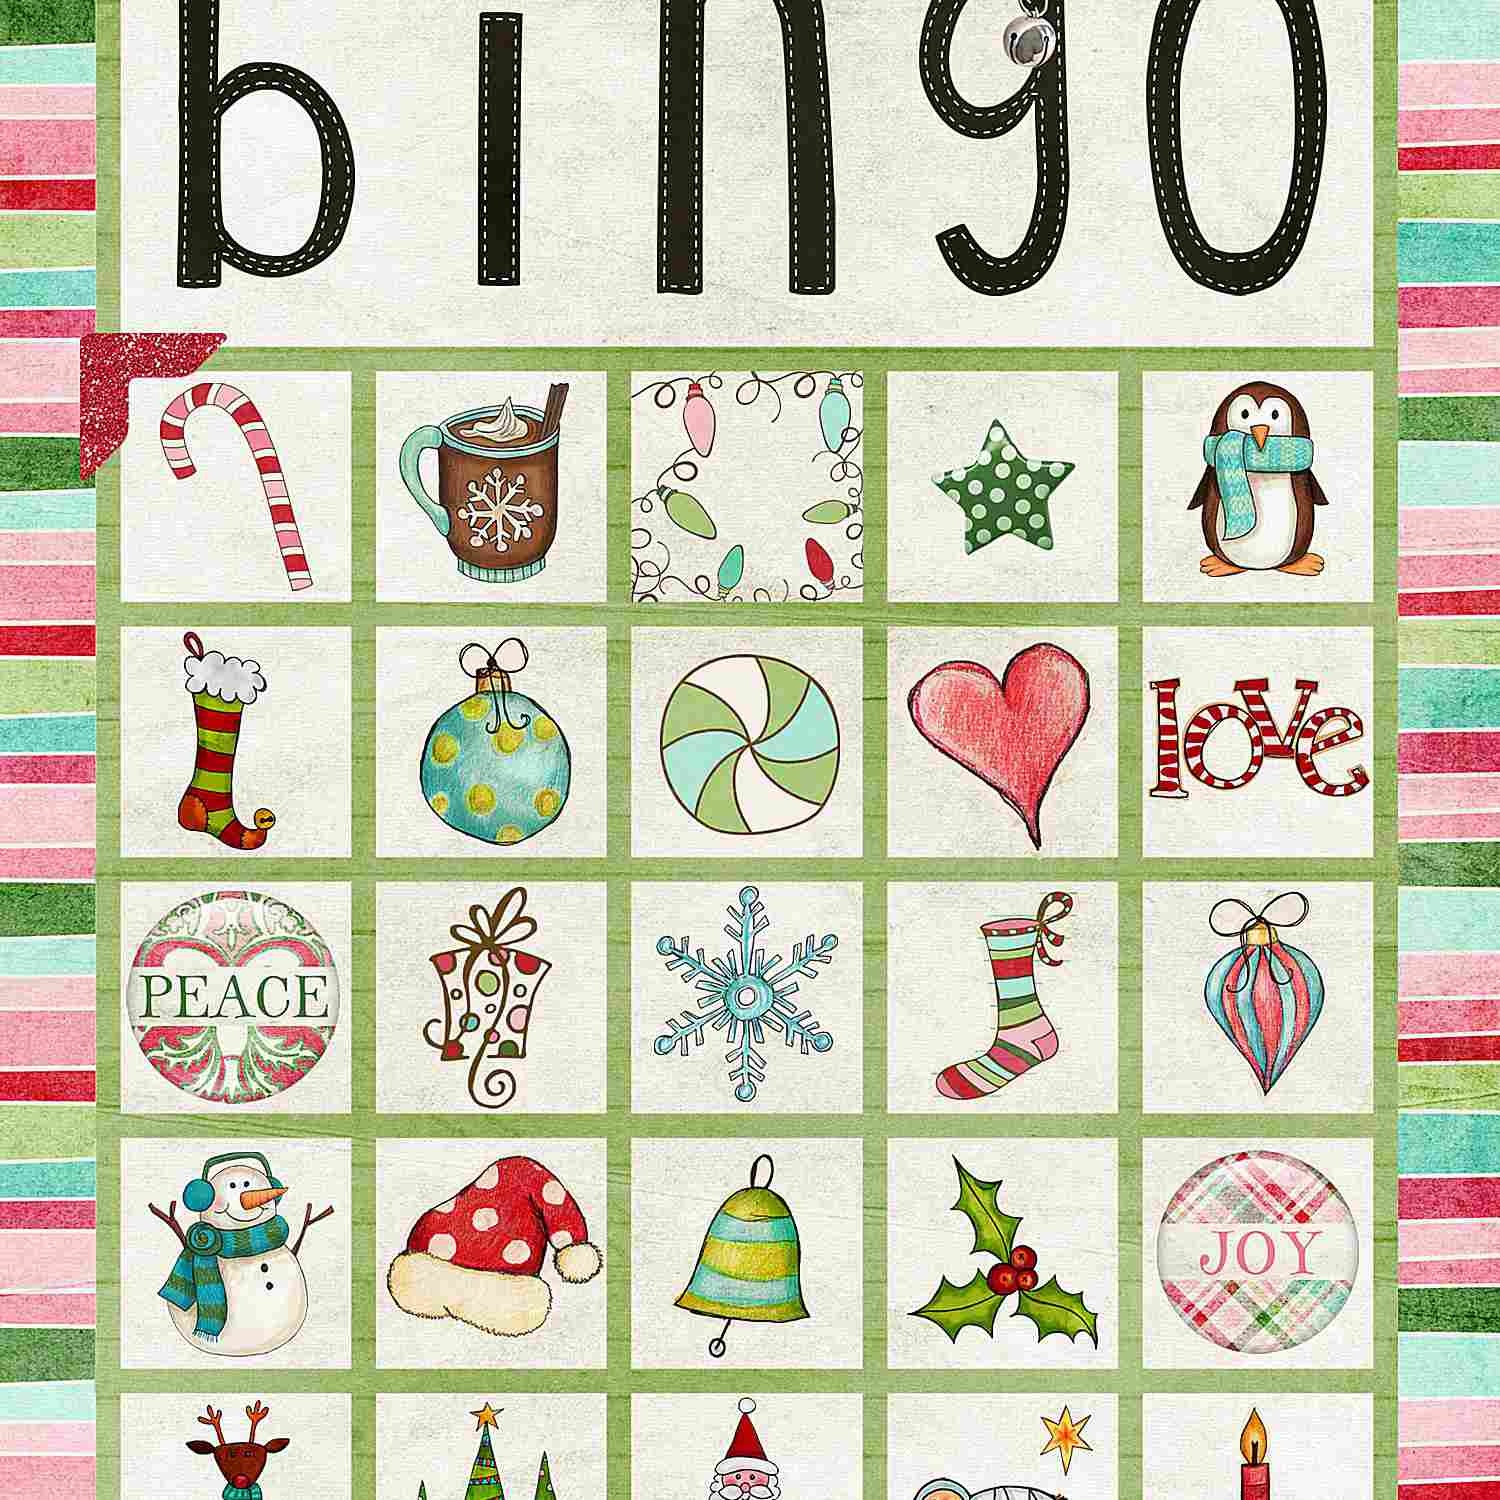 11 Free, Printable Christmas Bingo Games For The Family - Free Printable Christmas Bingo Cards